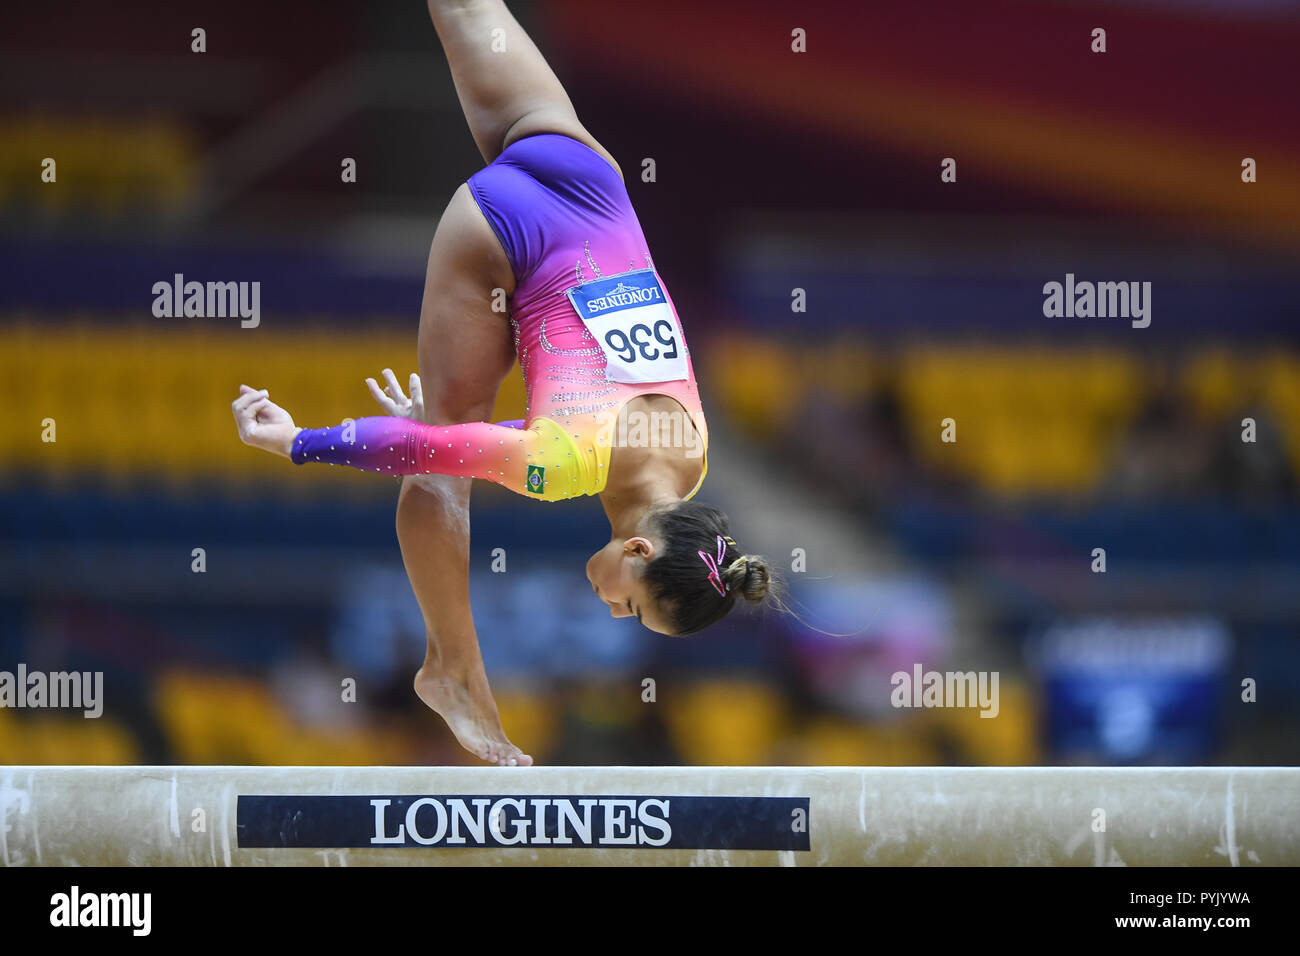 Doha, Qatar. 28th Oct, 2018. FLAVIA SARAIVA competes on the balance beam during the second day of preliminary competition held at the Aspire Dome in Doha, Qatar. Credit: Amy Sanderson/ZUMA Wire/Alamy Live News - Stock Image